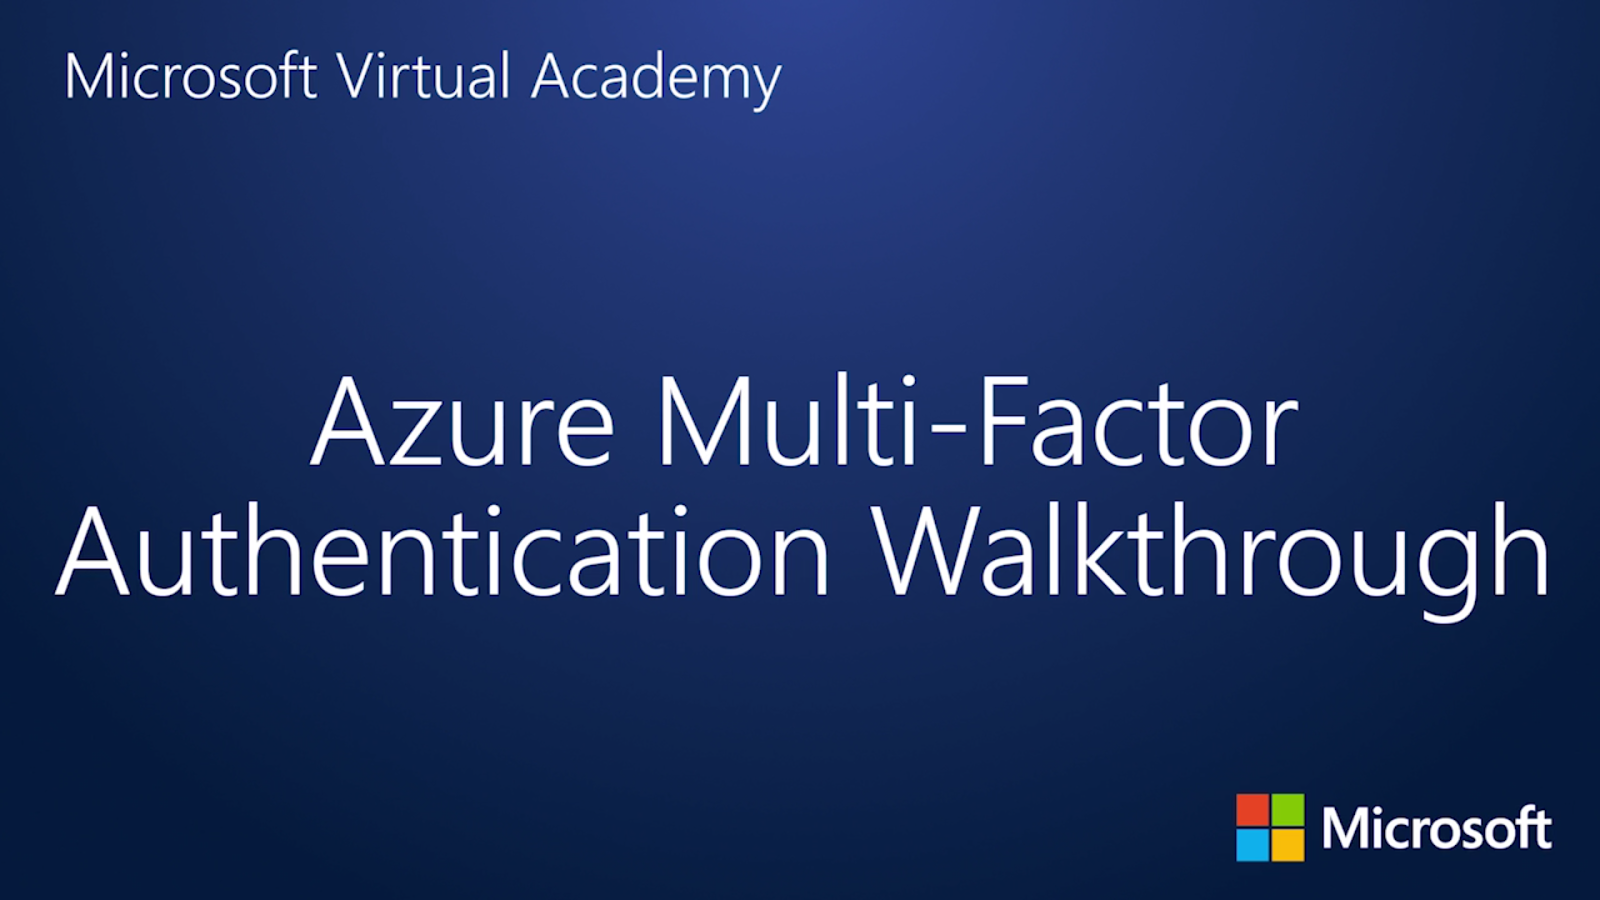 Exchange Anywhere: Let's Learn Azure Multi-Factor